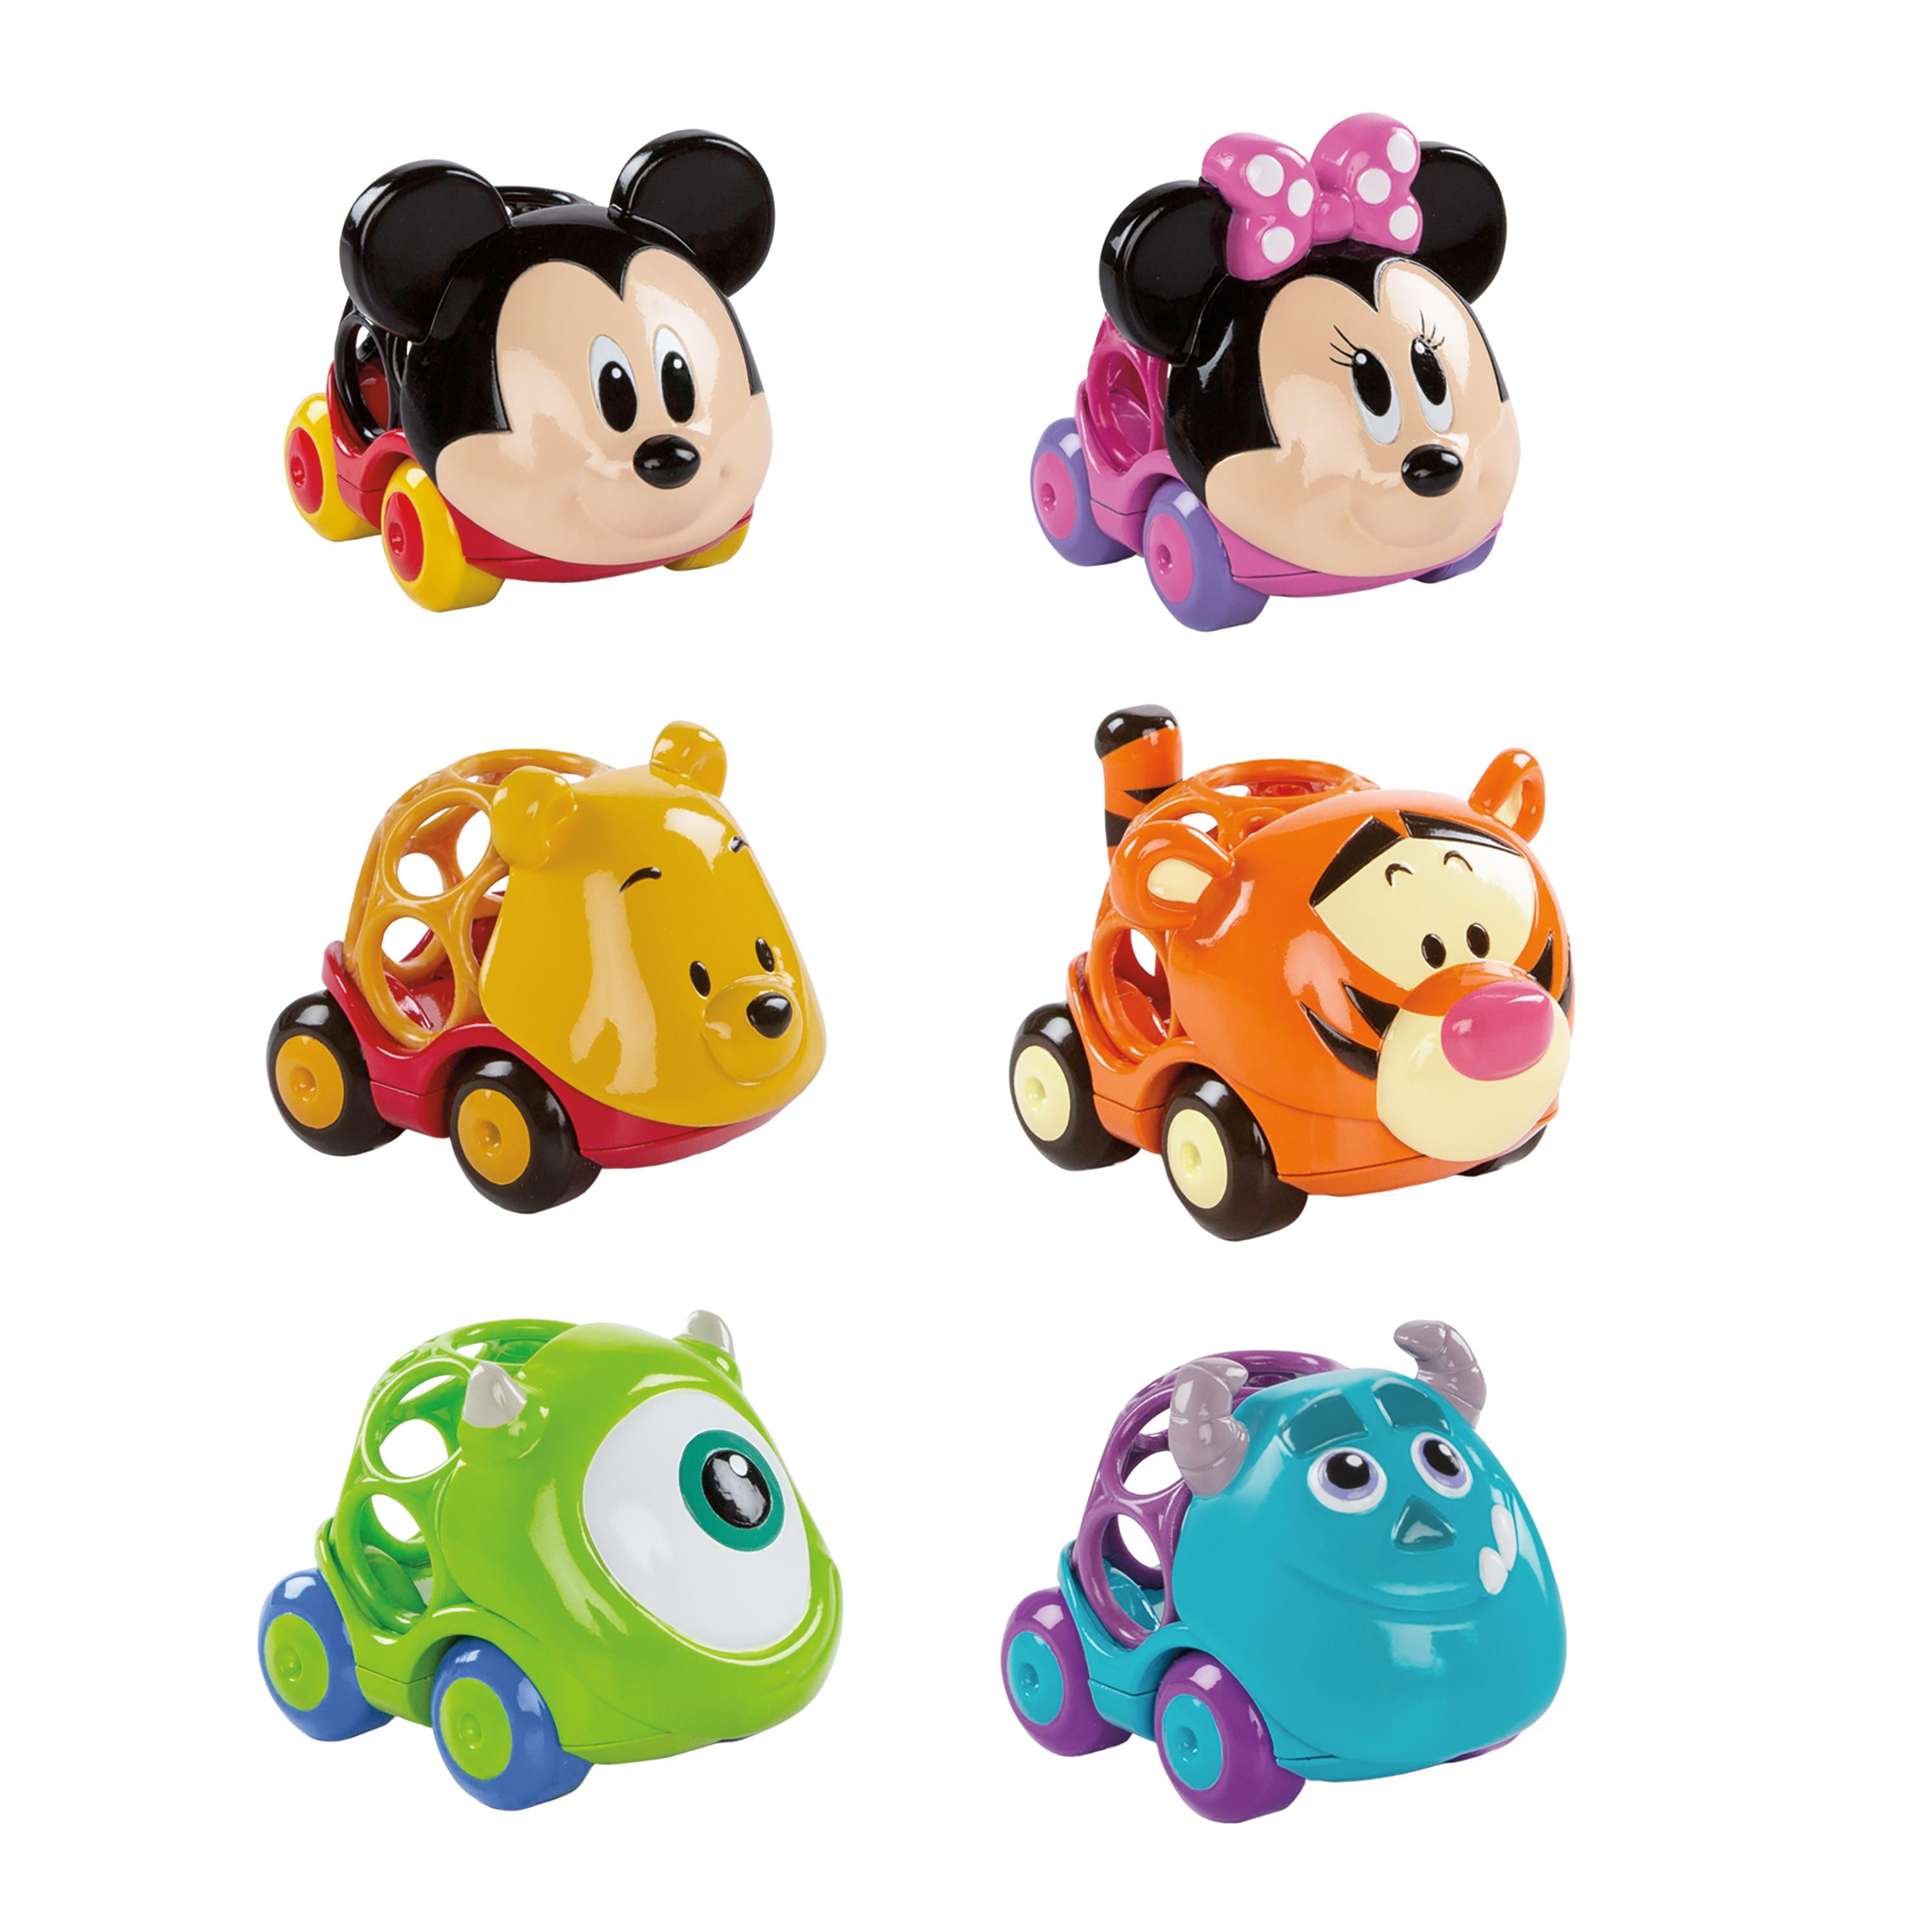 The Go Grippers Collection Is A Set Of 6 Fun Disney